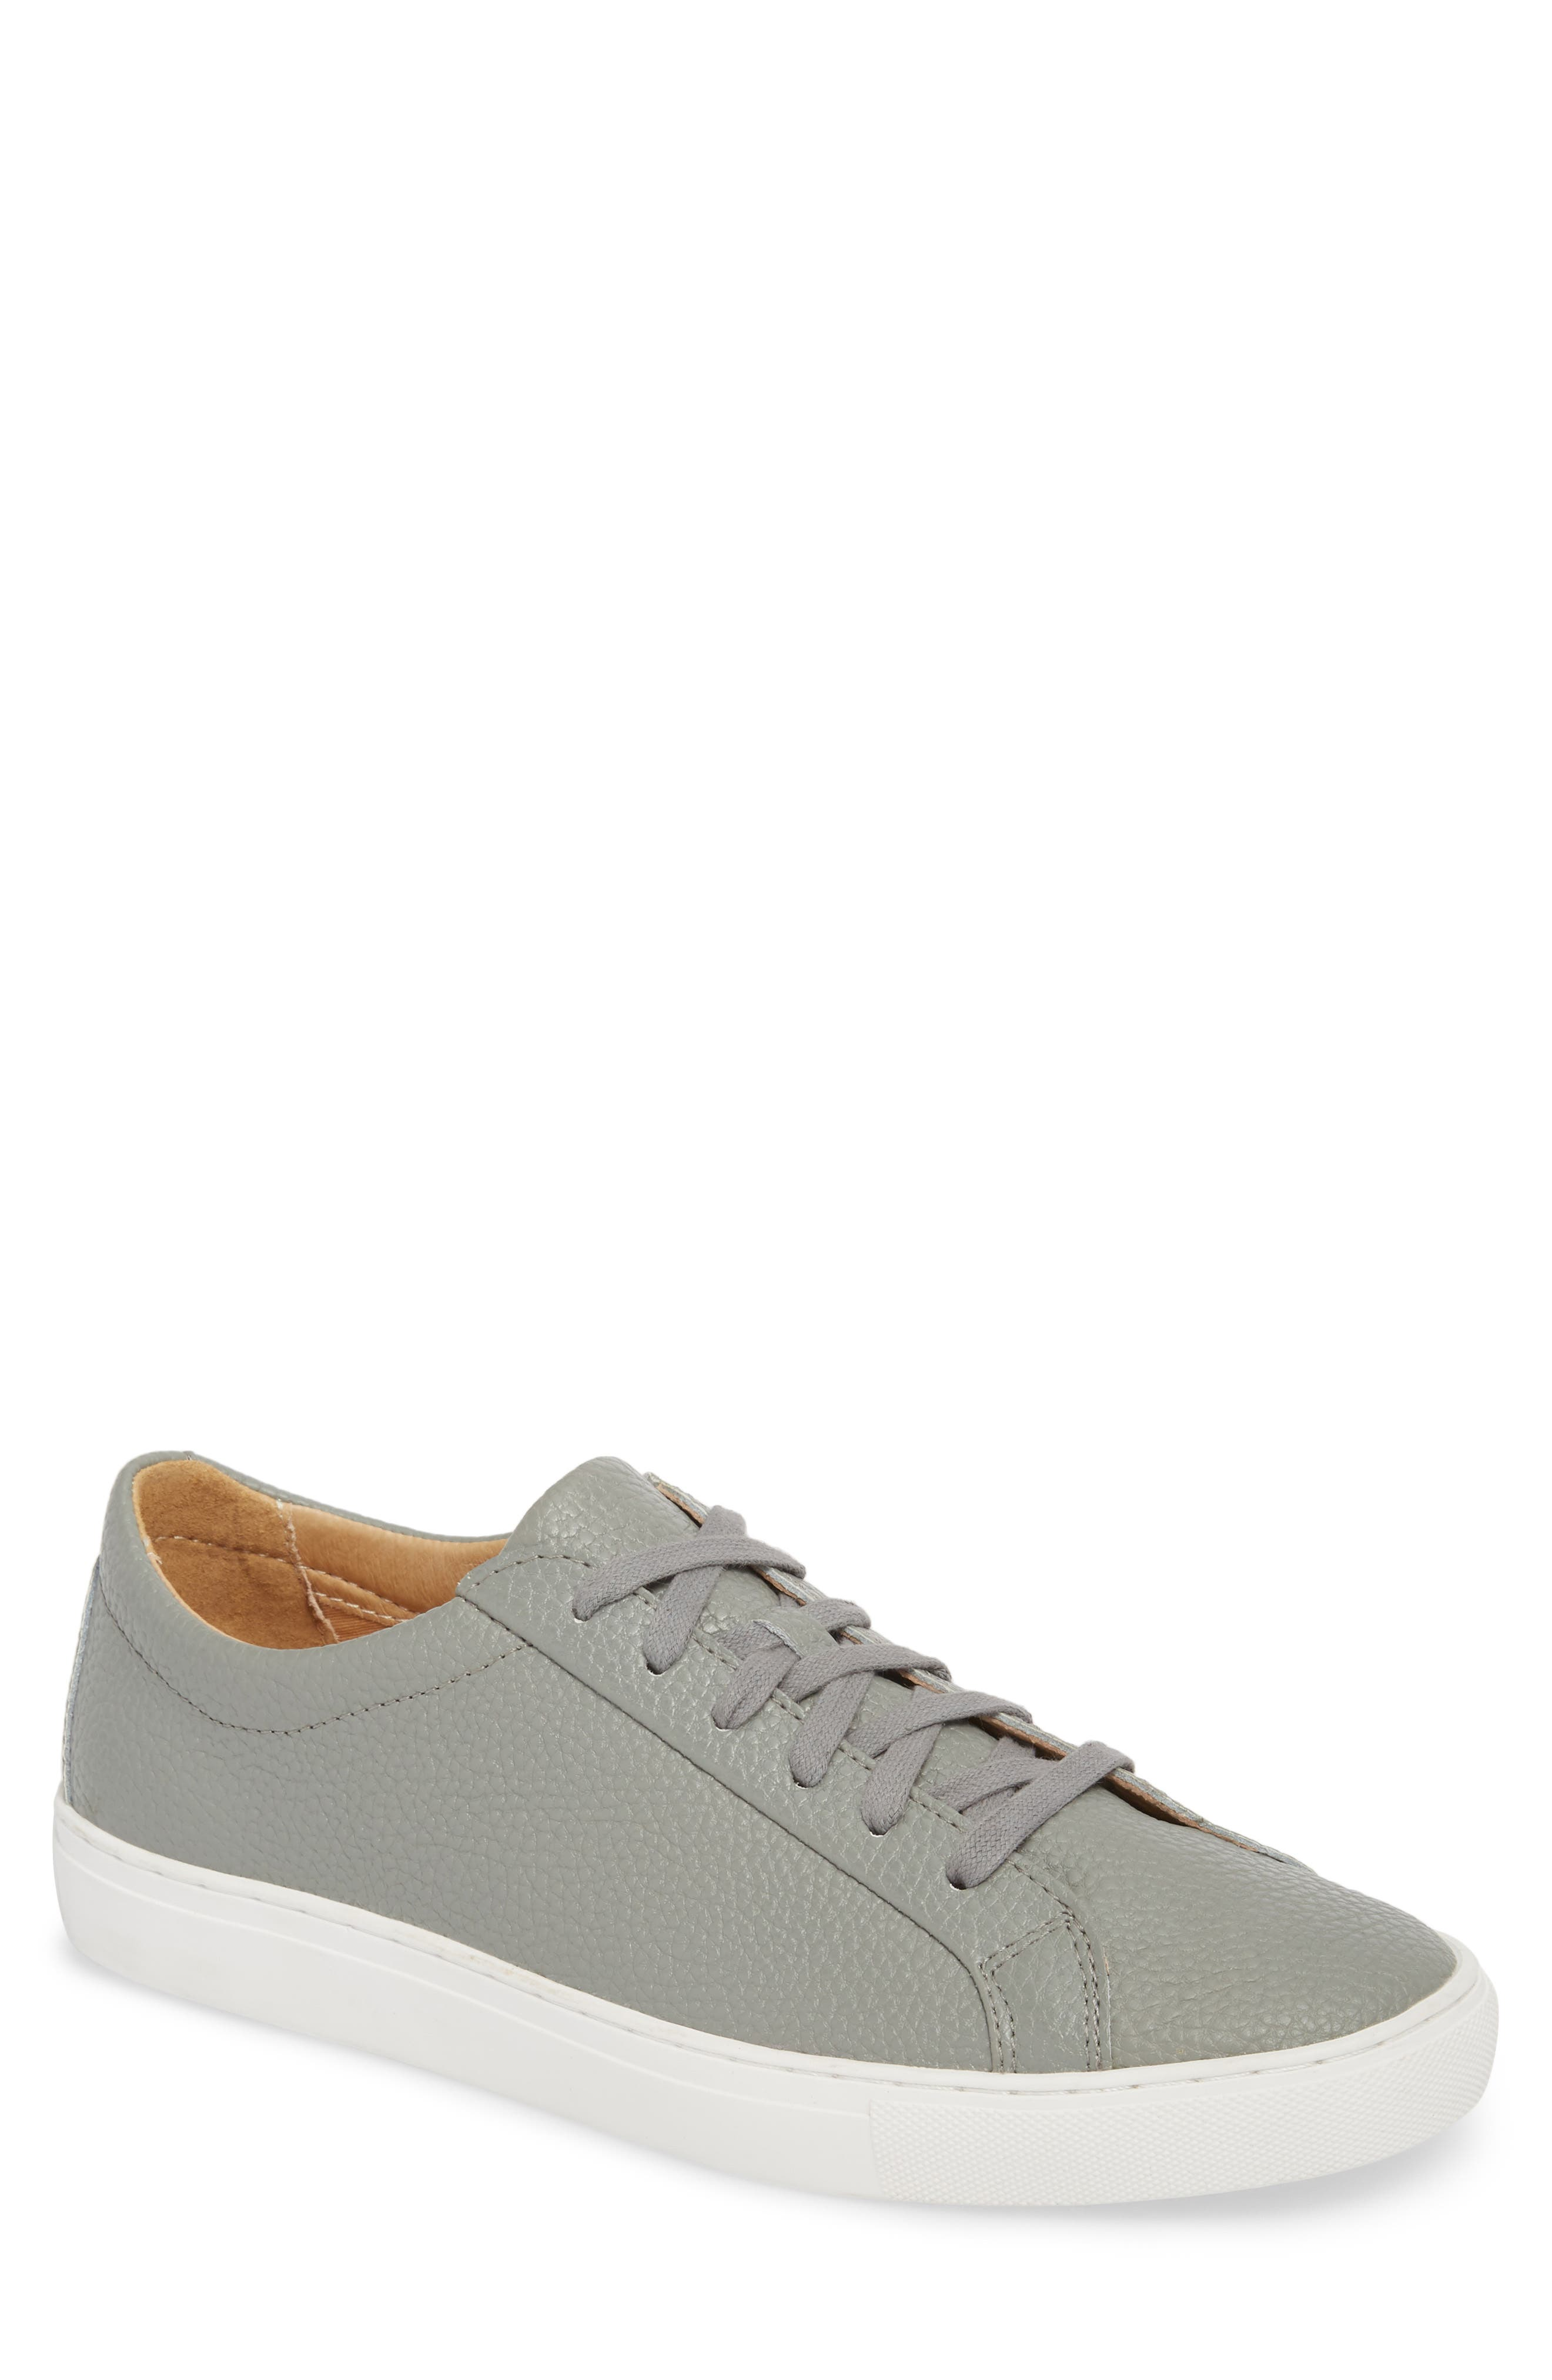 TCG Kennedy Low Top Sneaker, Main, color, RIVER ROCK LEATHER